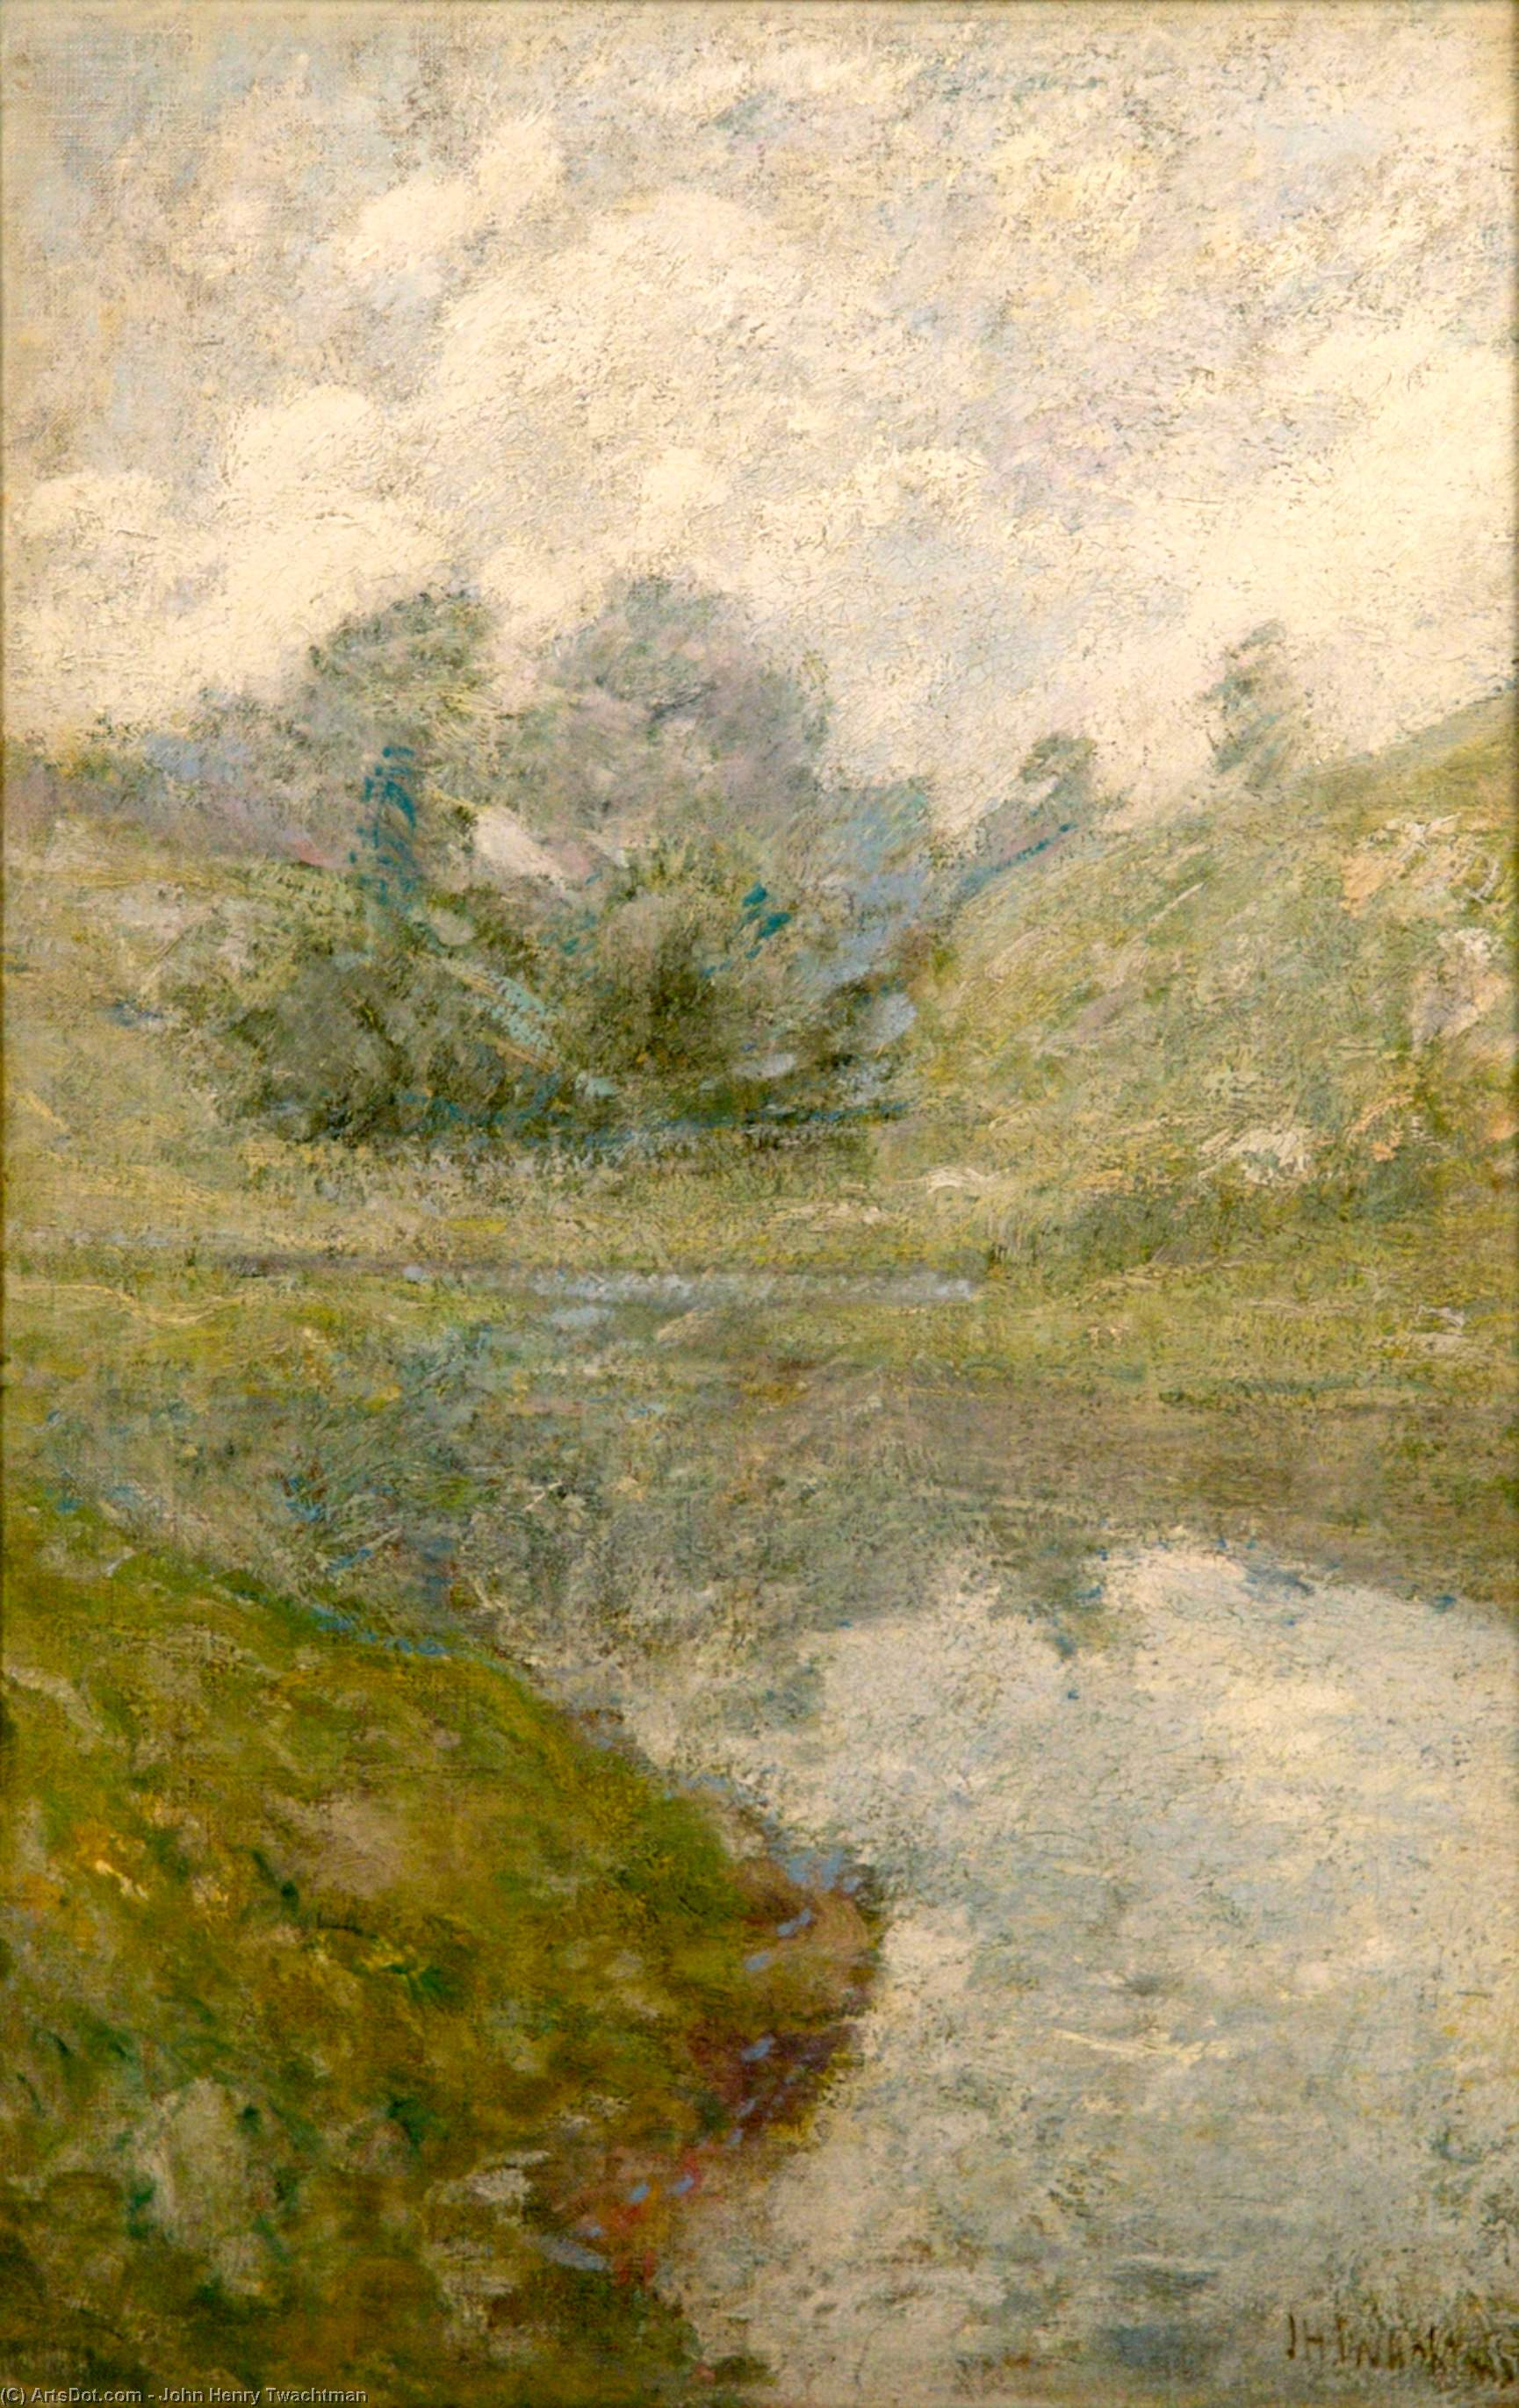 Order Oil Painting : Landscape 3, 1902 by John Henry Twachtman (1853-1902, United States) | ArtsDot.com